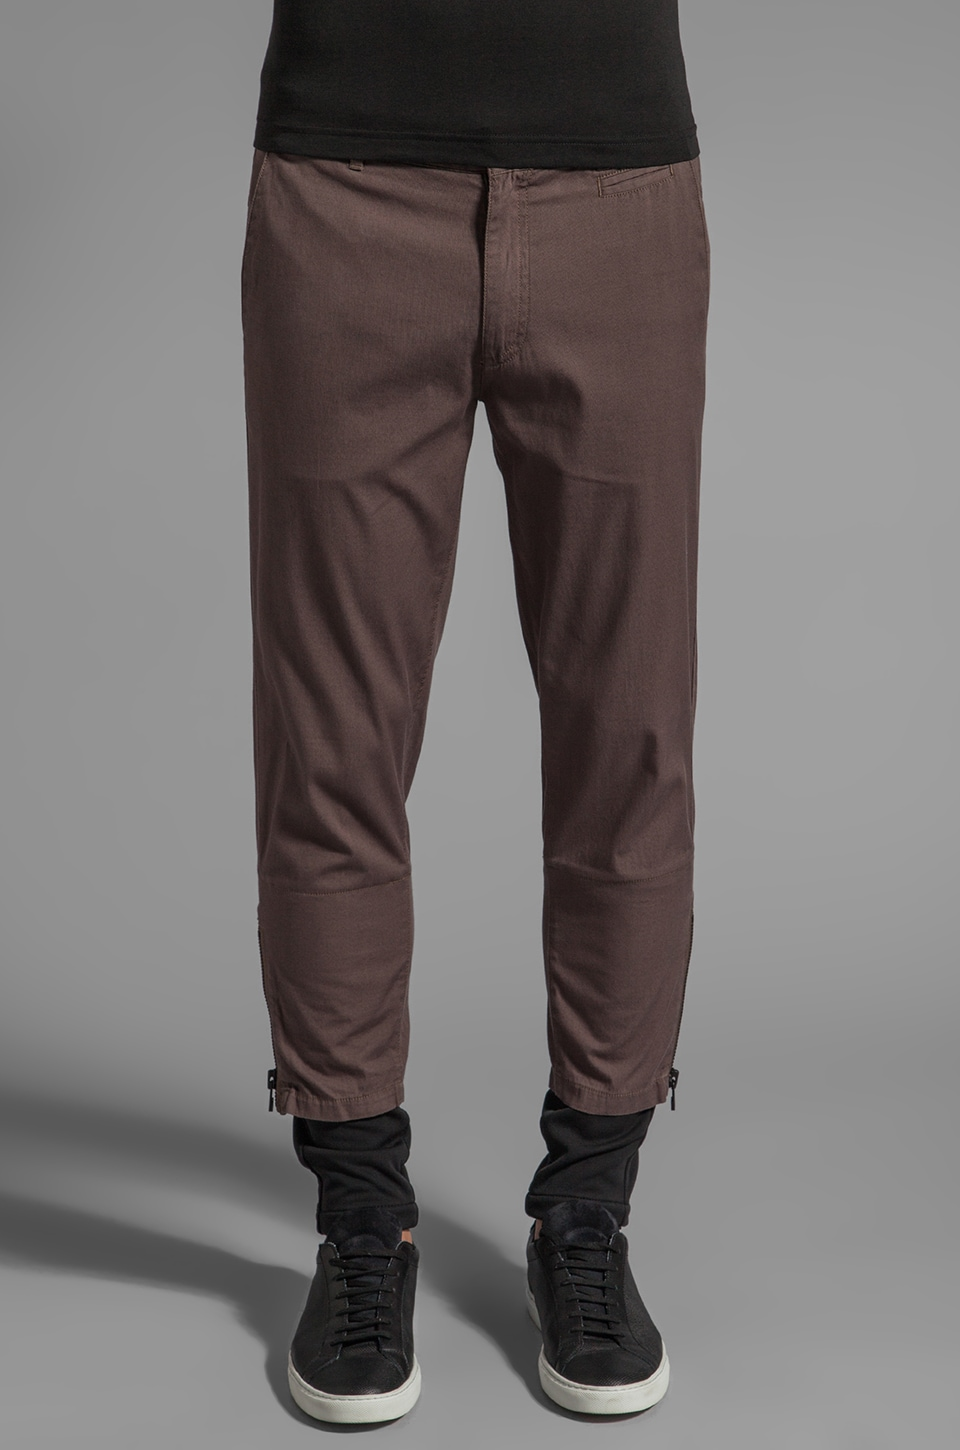 adidas SLVR Slim Cotton Pant in ST Cargo Brown